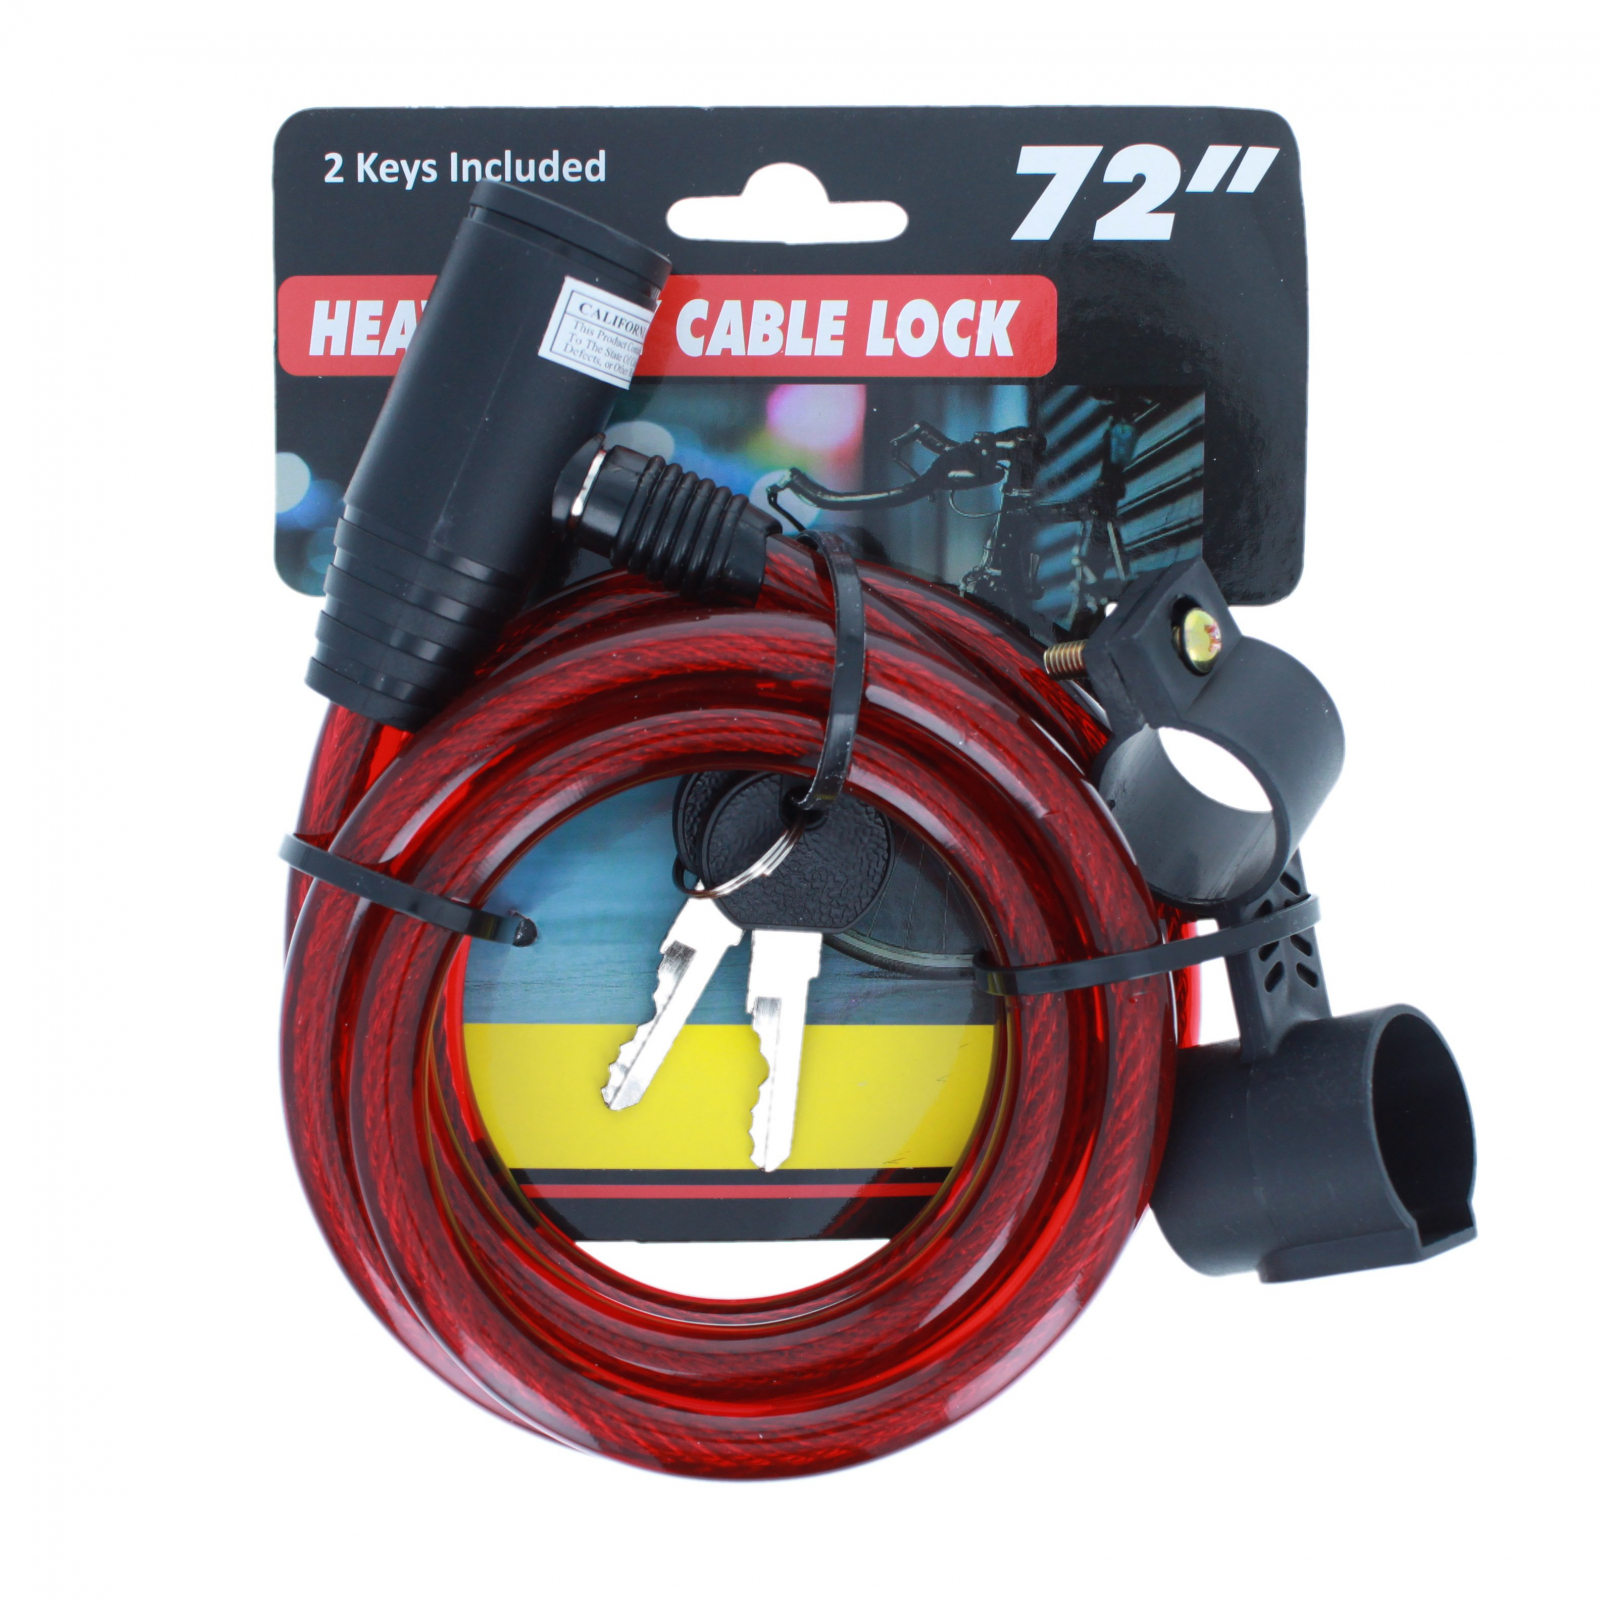 Heavy Duty Mounting Bracket Bike Lock Cable with 2 Keys Red